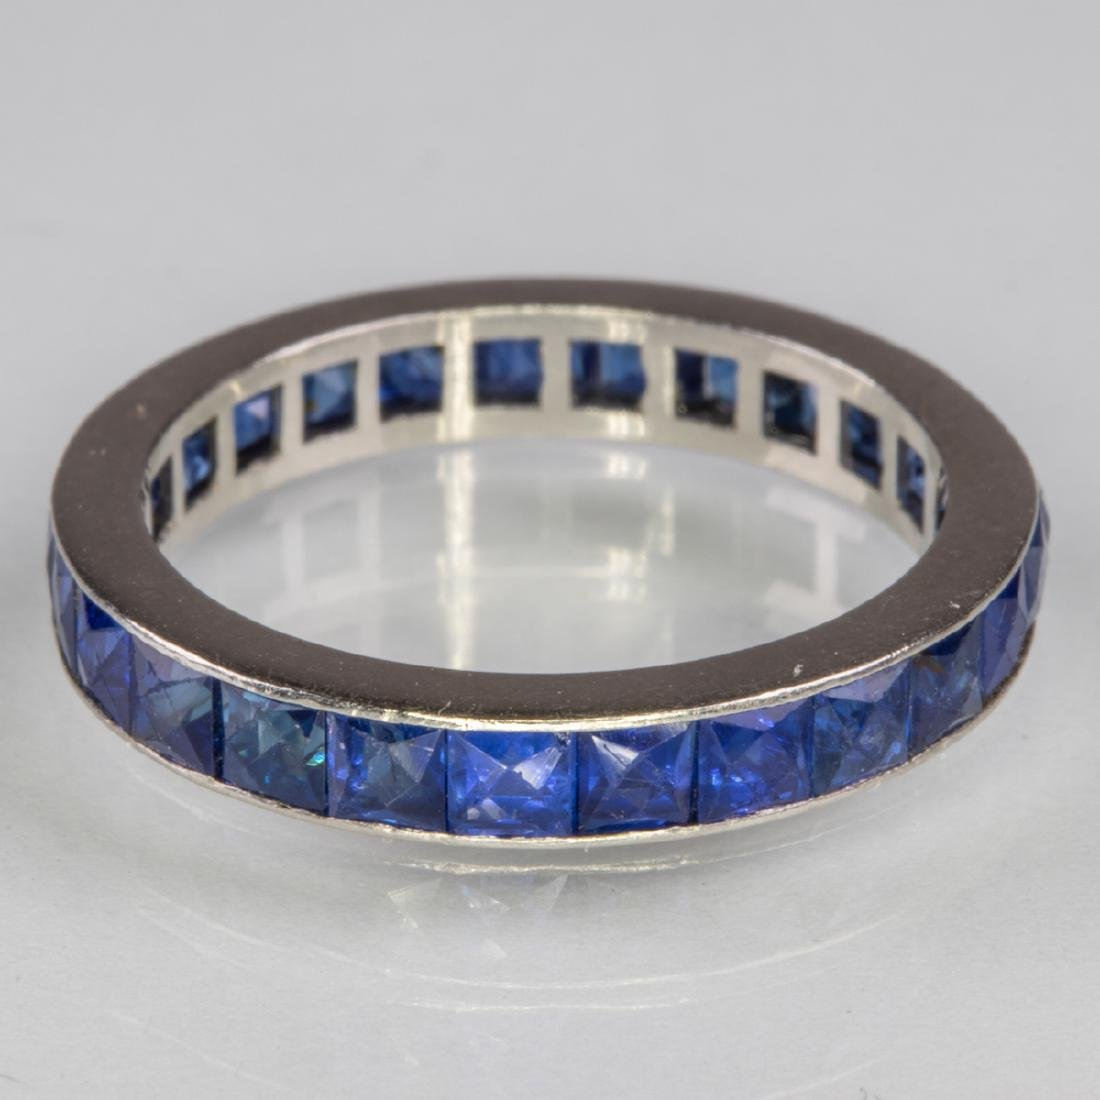 A 14kt. White Gold and Sapphire Eternity Band,